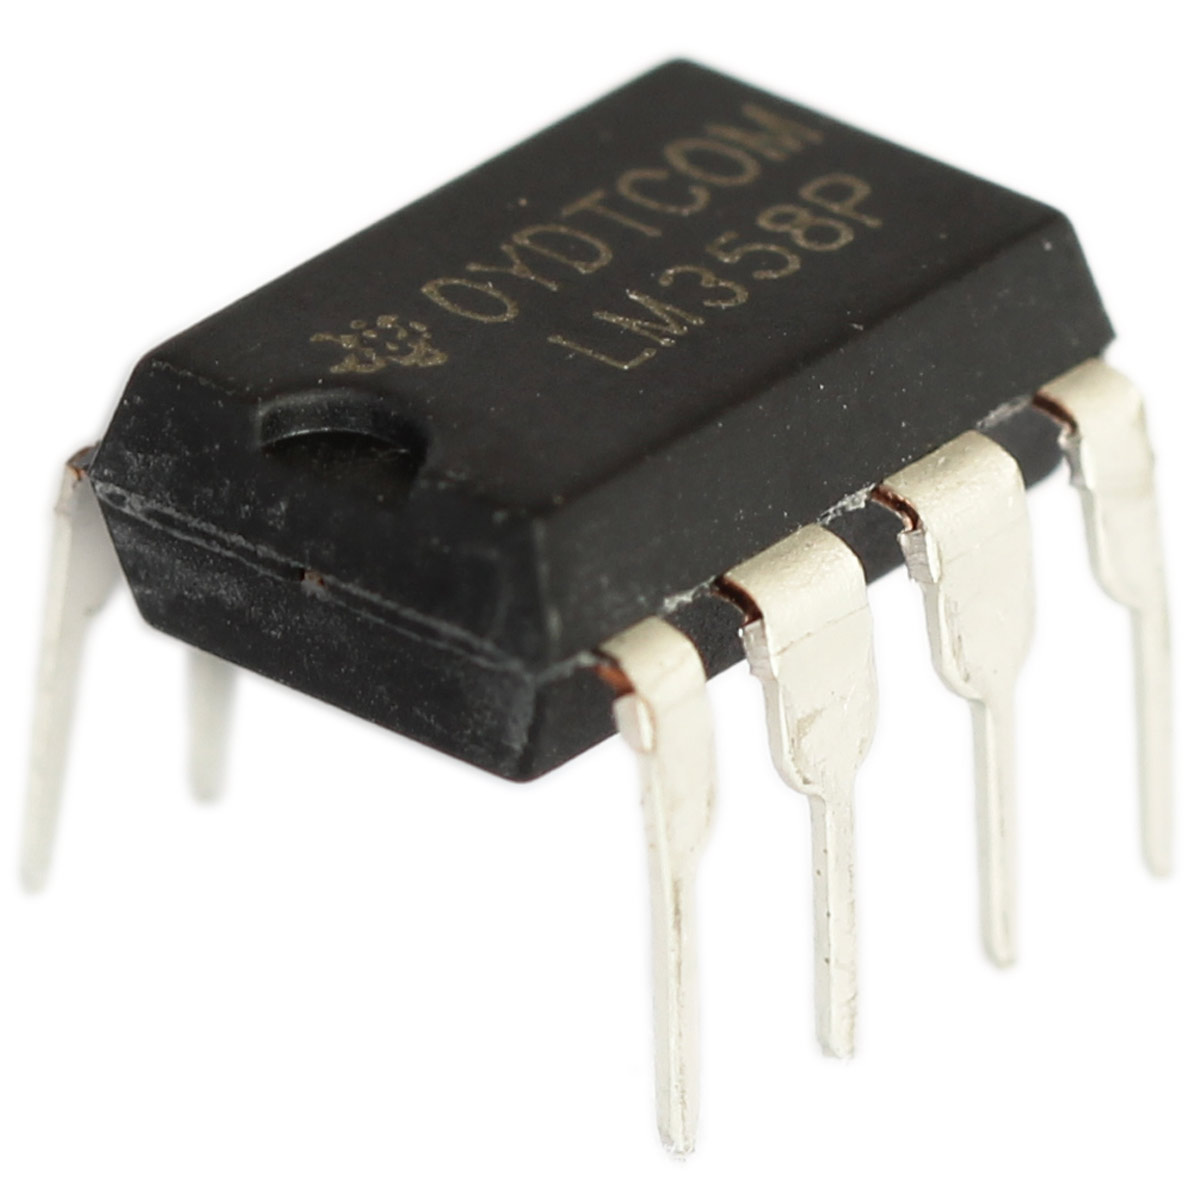 Low Power Dual Op Amp Usamusclecars Lm358nlow Operational Amplifiers Lm358 Amplifier